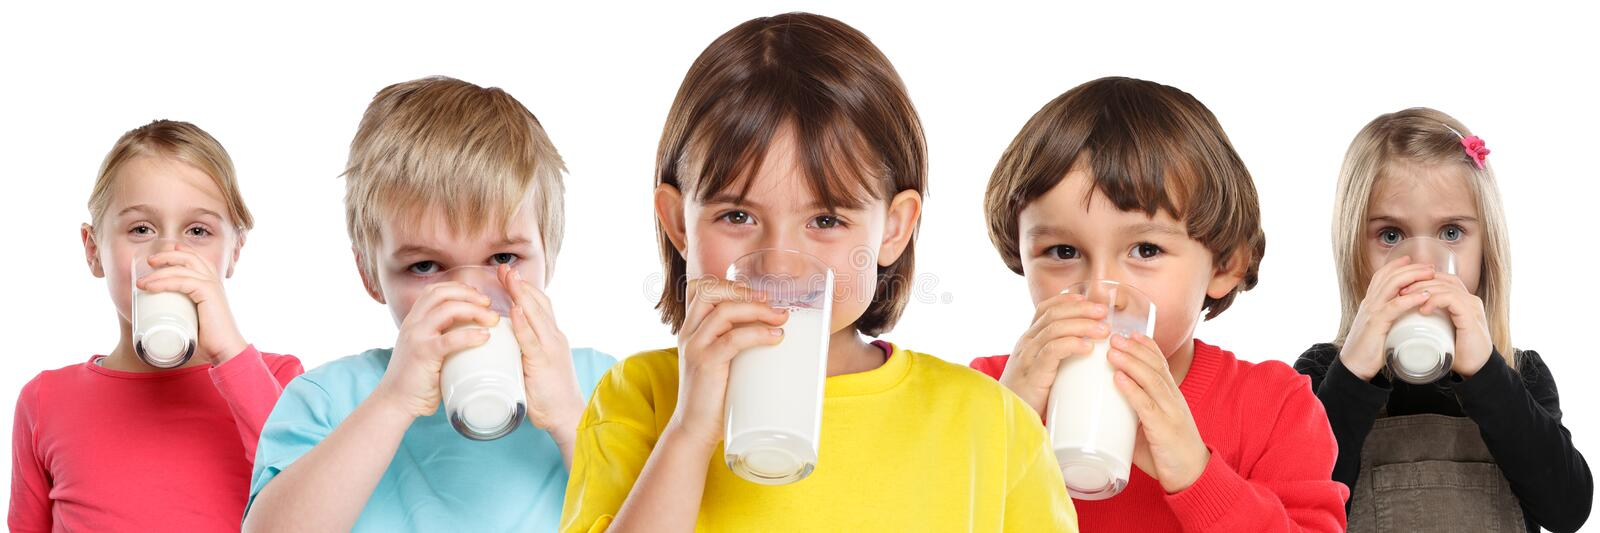 Group of children girl boy drinking milk kids glass healthy eating banner isolated on white. Group of children girl boy drinking milk kids glass healthy eating royalty free stock photos